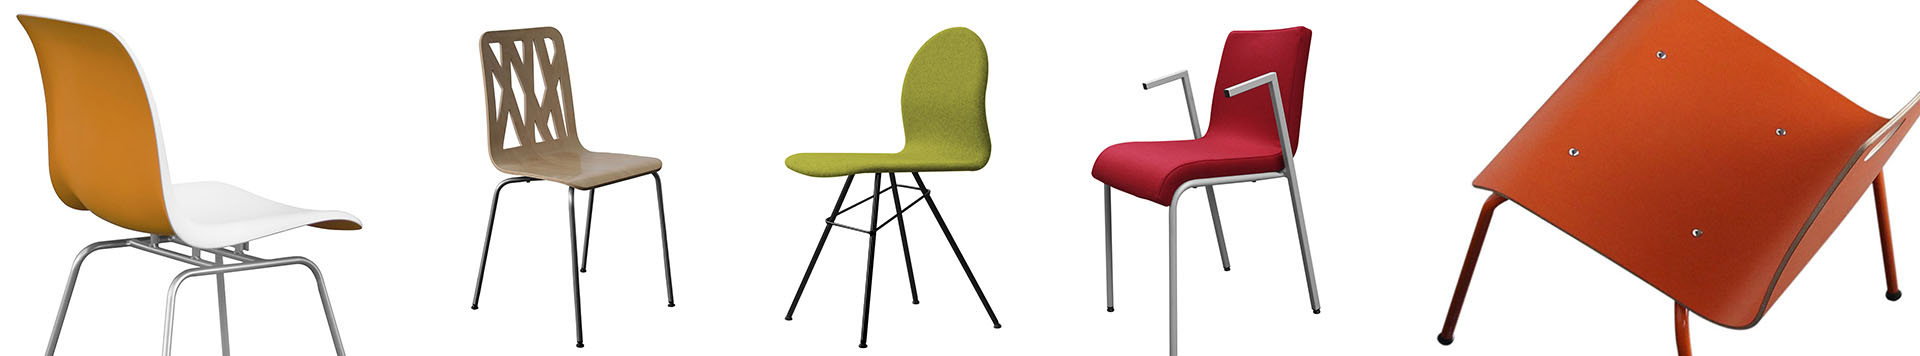 categories_chaises_coques